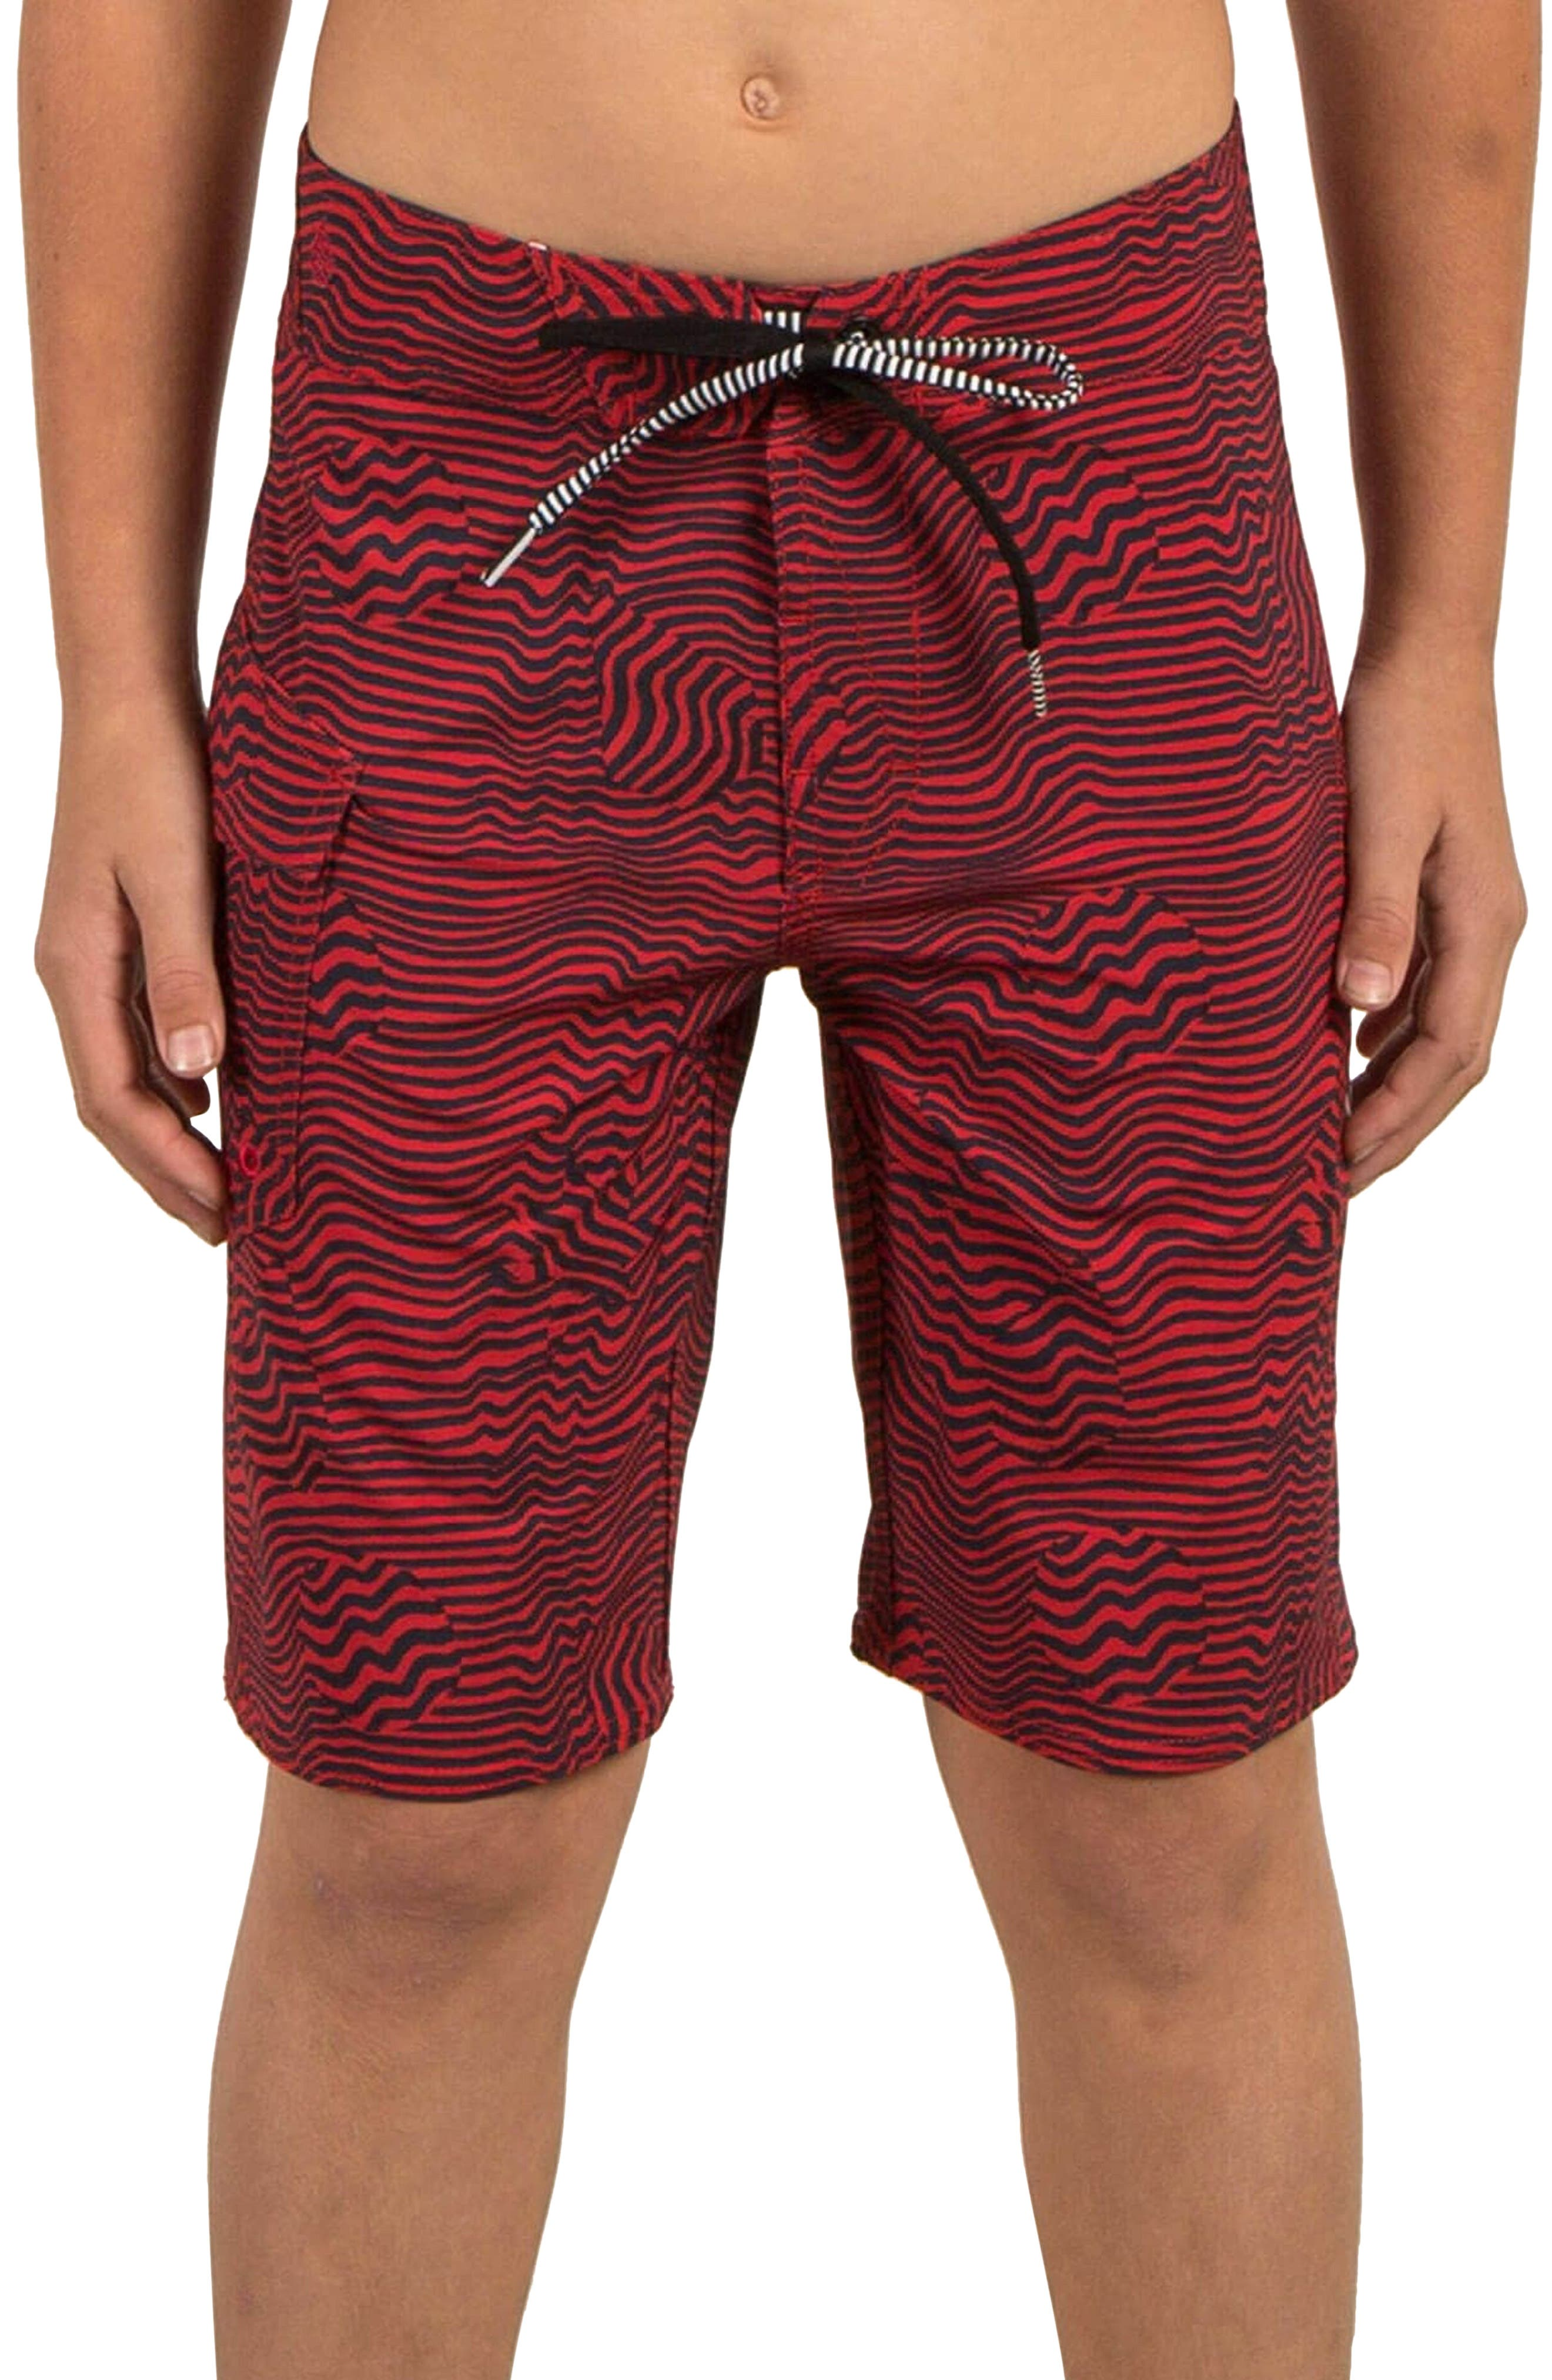 Magnetic Stone Board Shorts,                             Alternate thumbnail 2, color,                             True Red